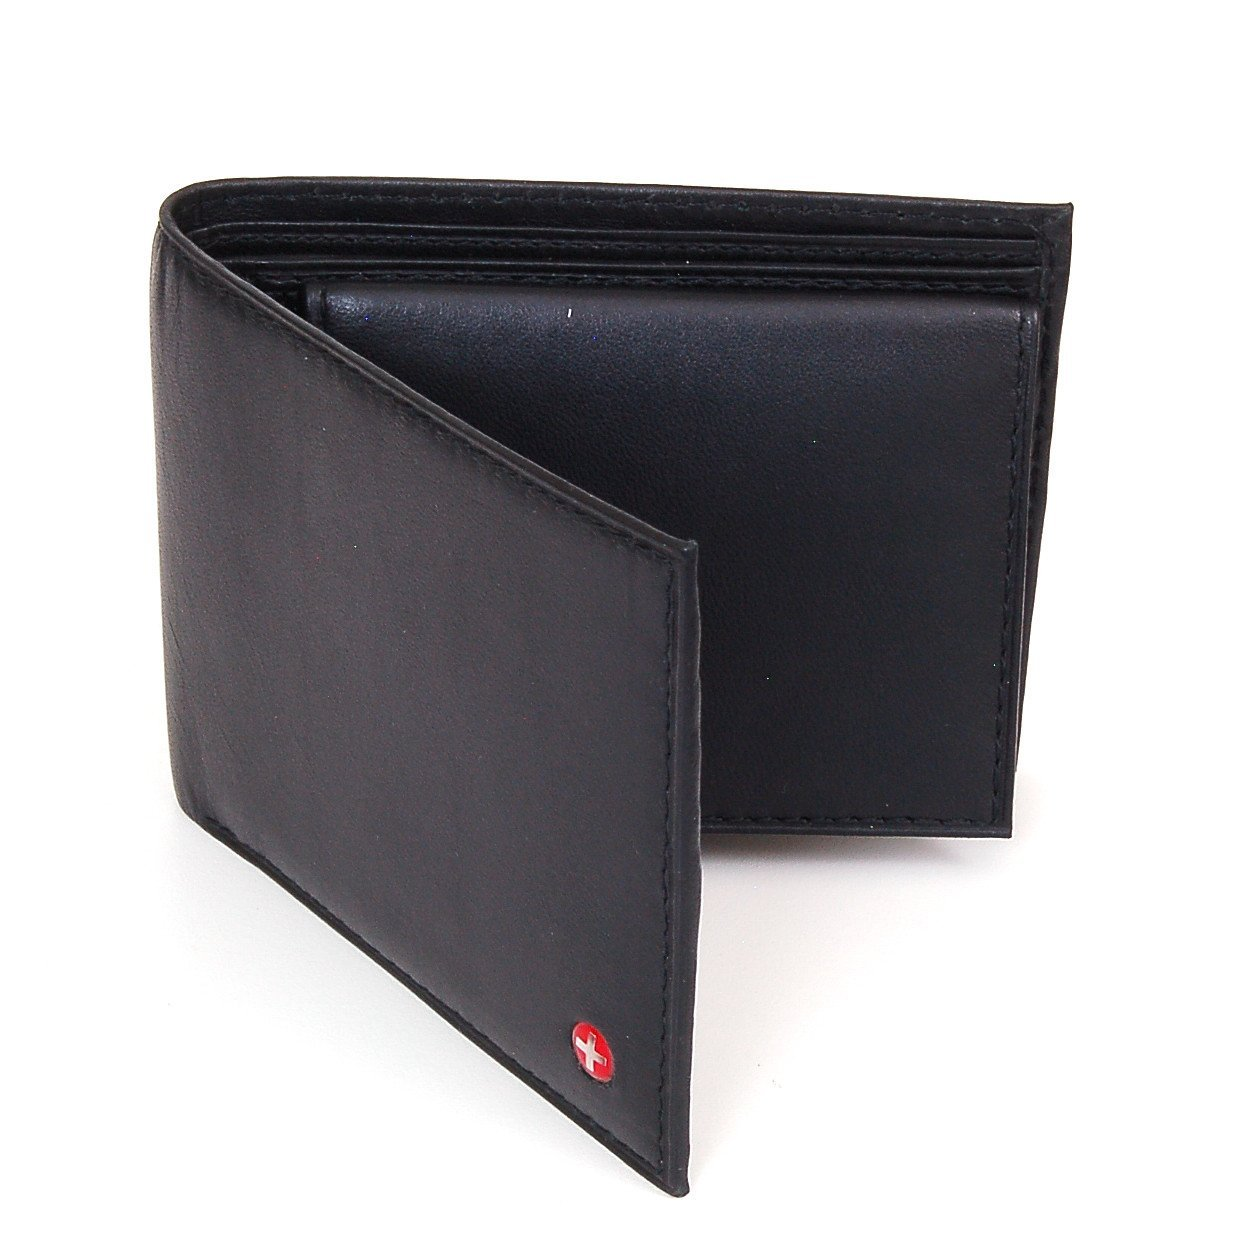 alpine swiww men's leather wallet